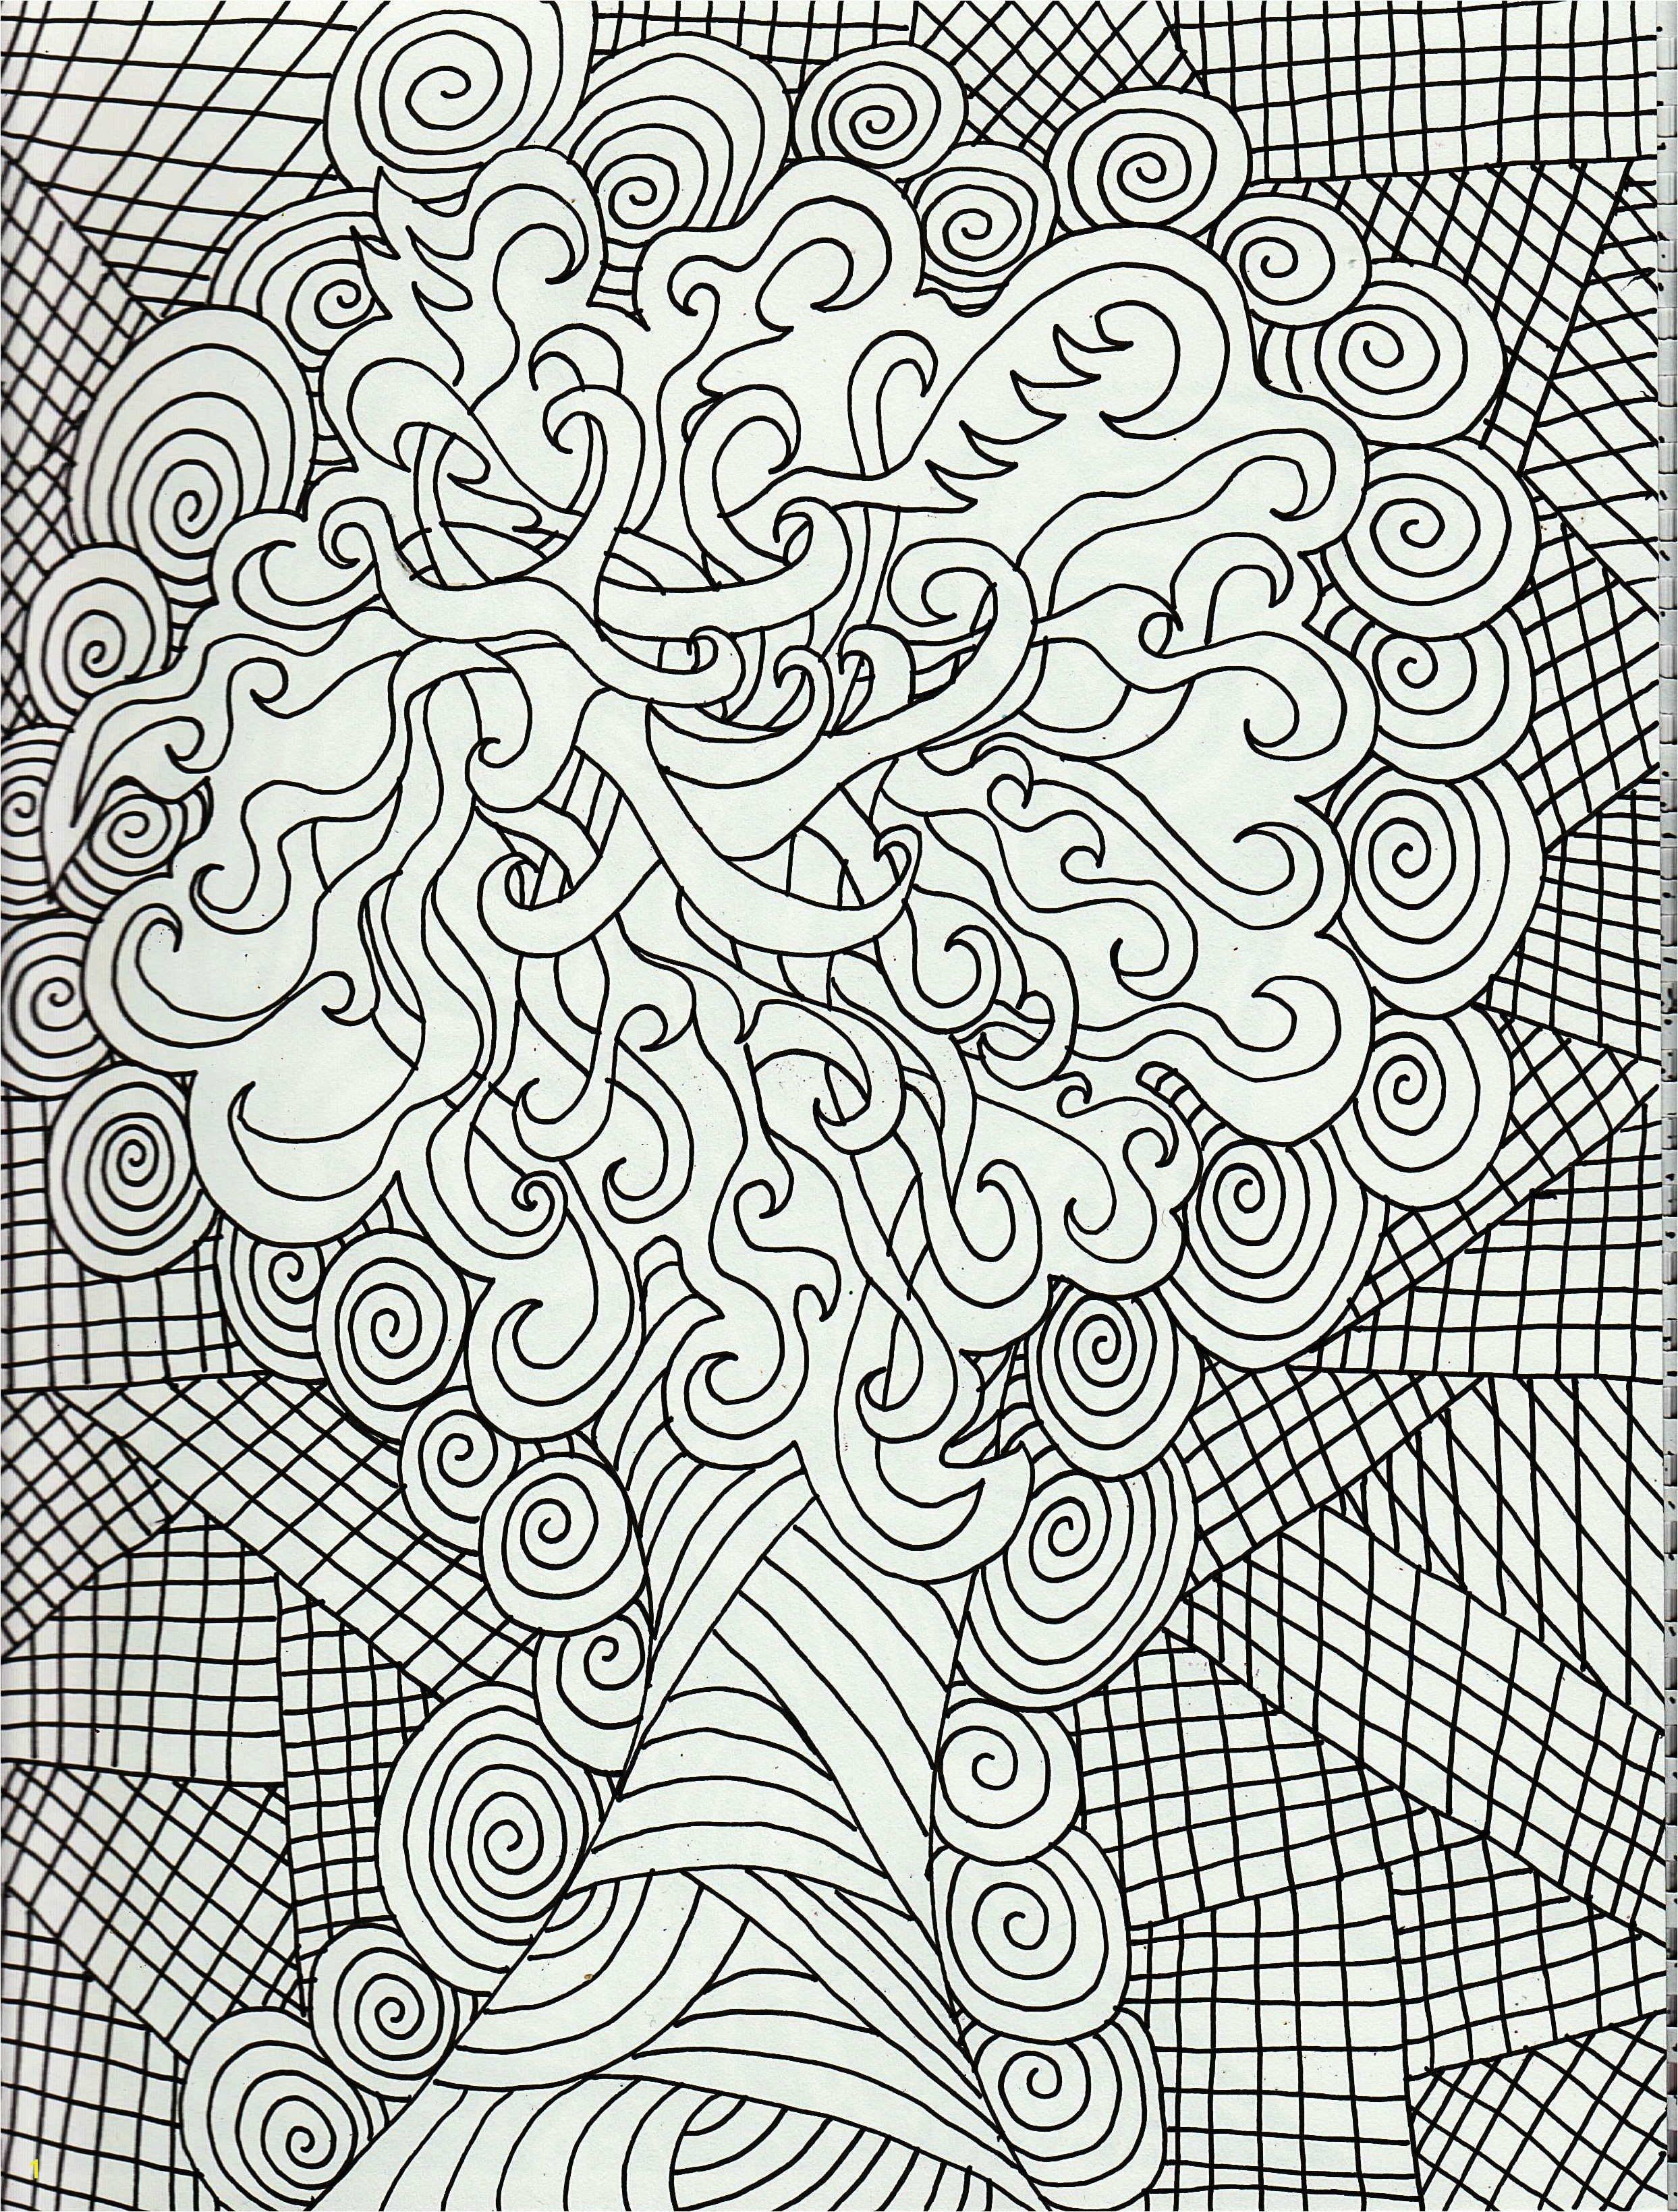 High Resolution Adult Coloring Pages Coloring Pages for Adults Free